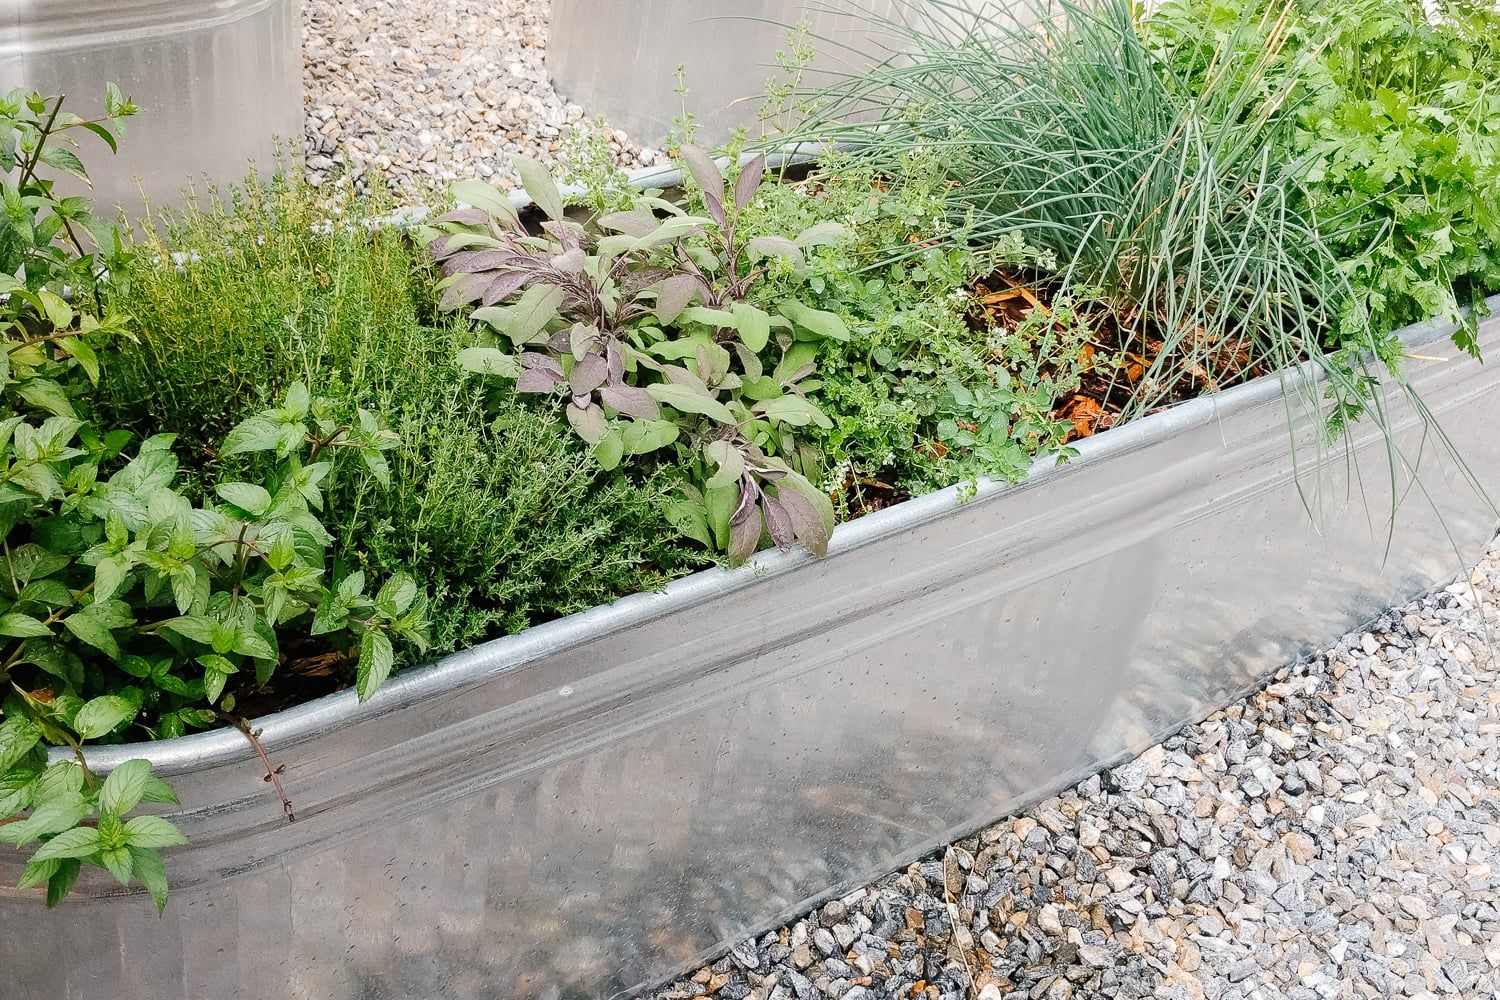 galvanized steel planter filled with a variety of fresh herbs